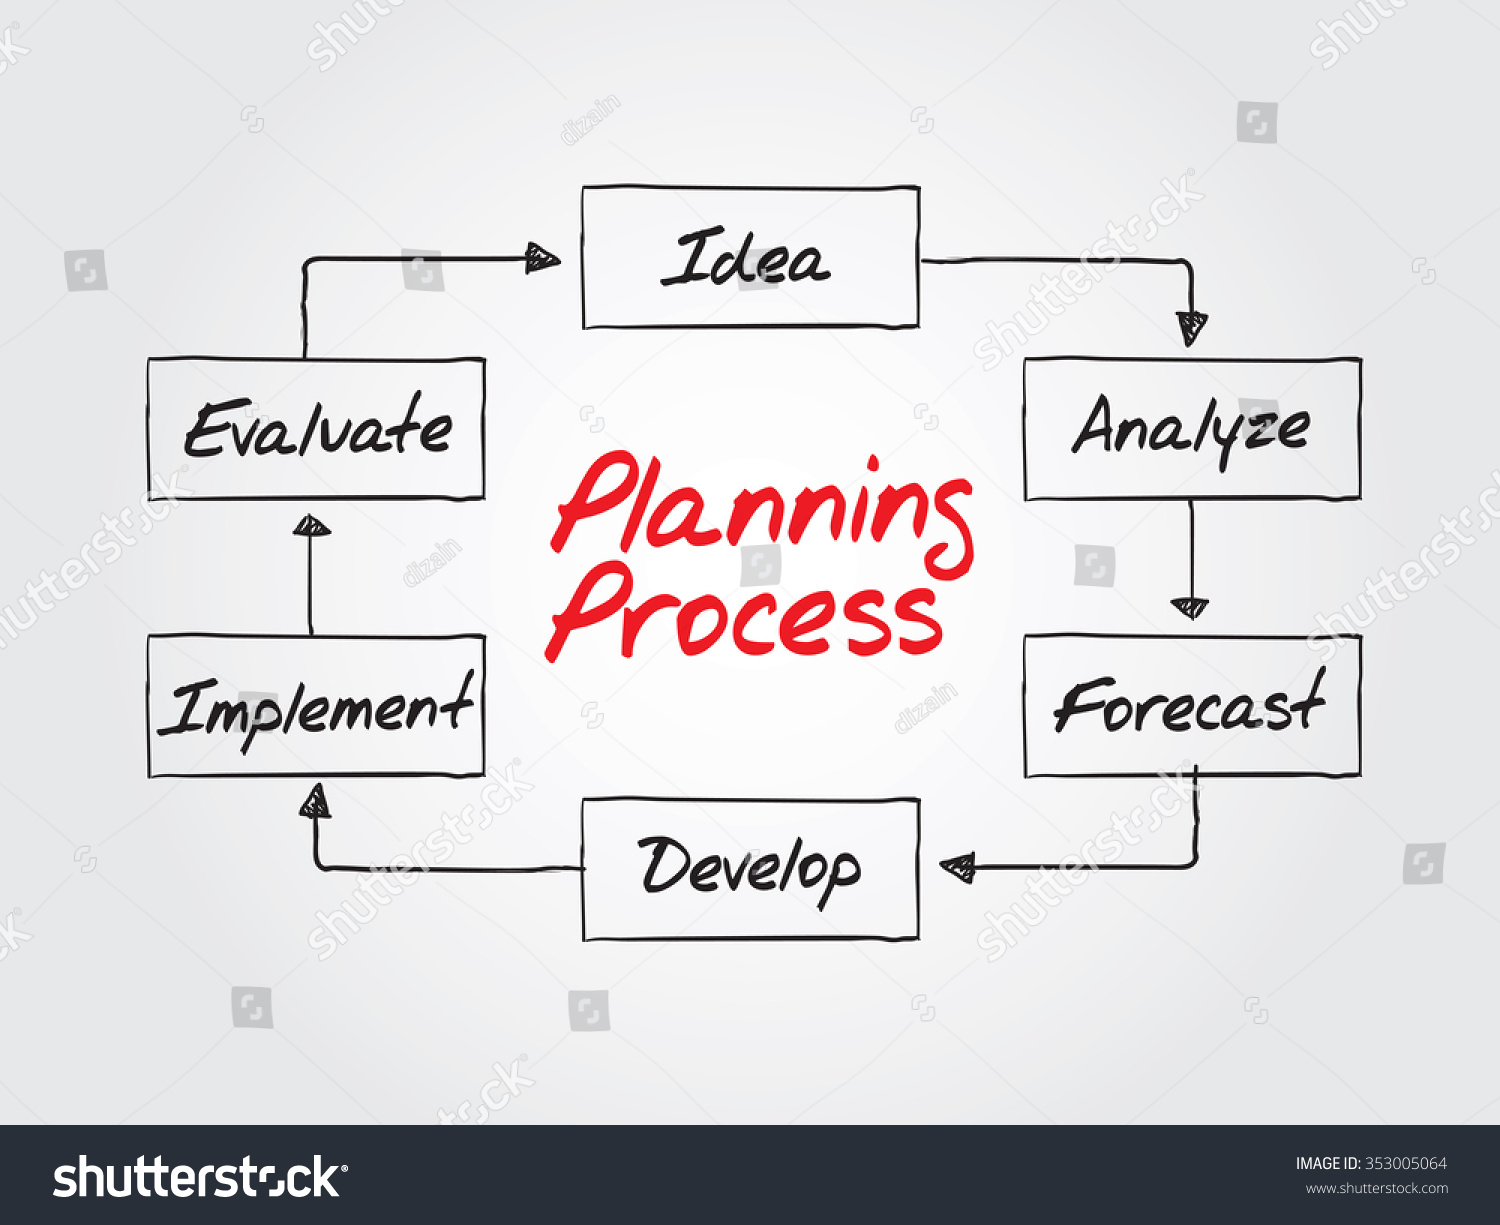 Planning Process Flow Chart Business Strategy Stock Illustration